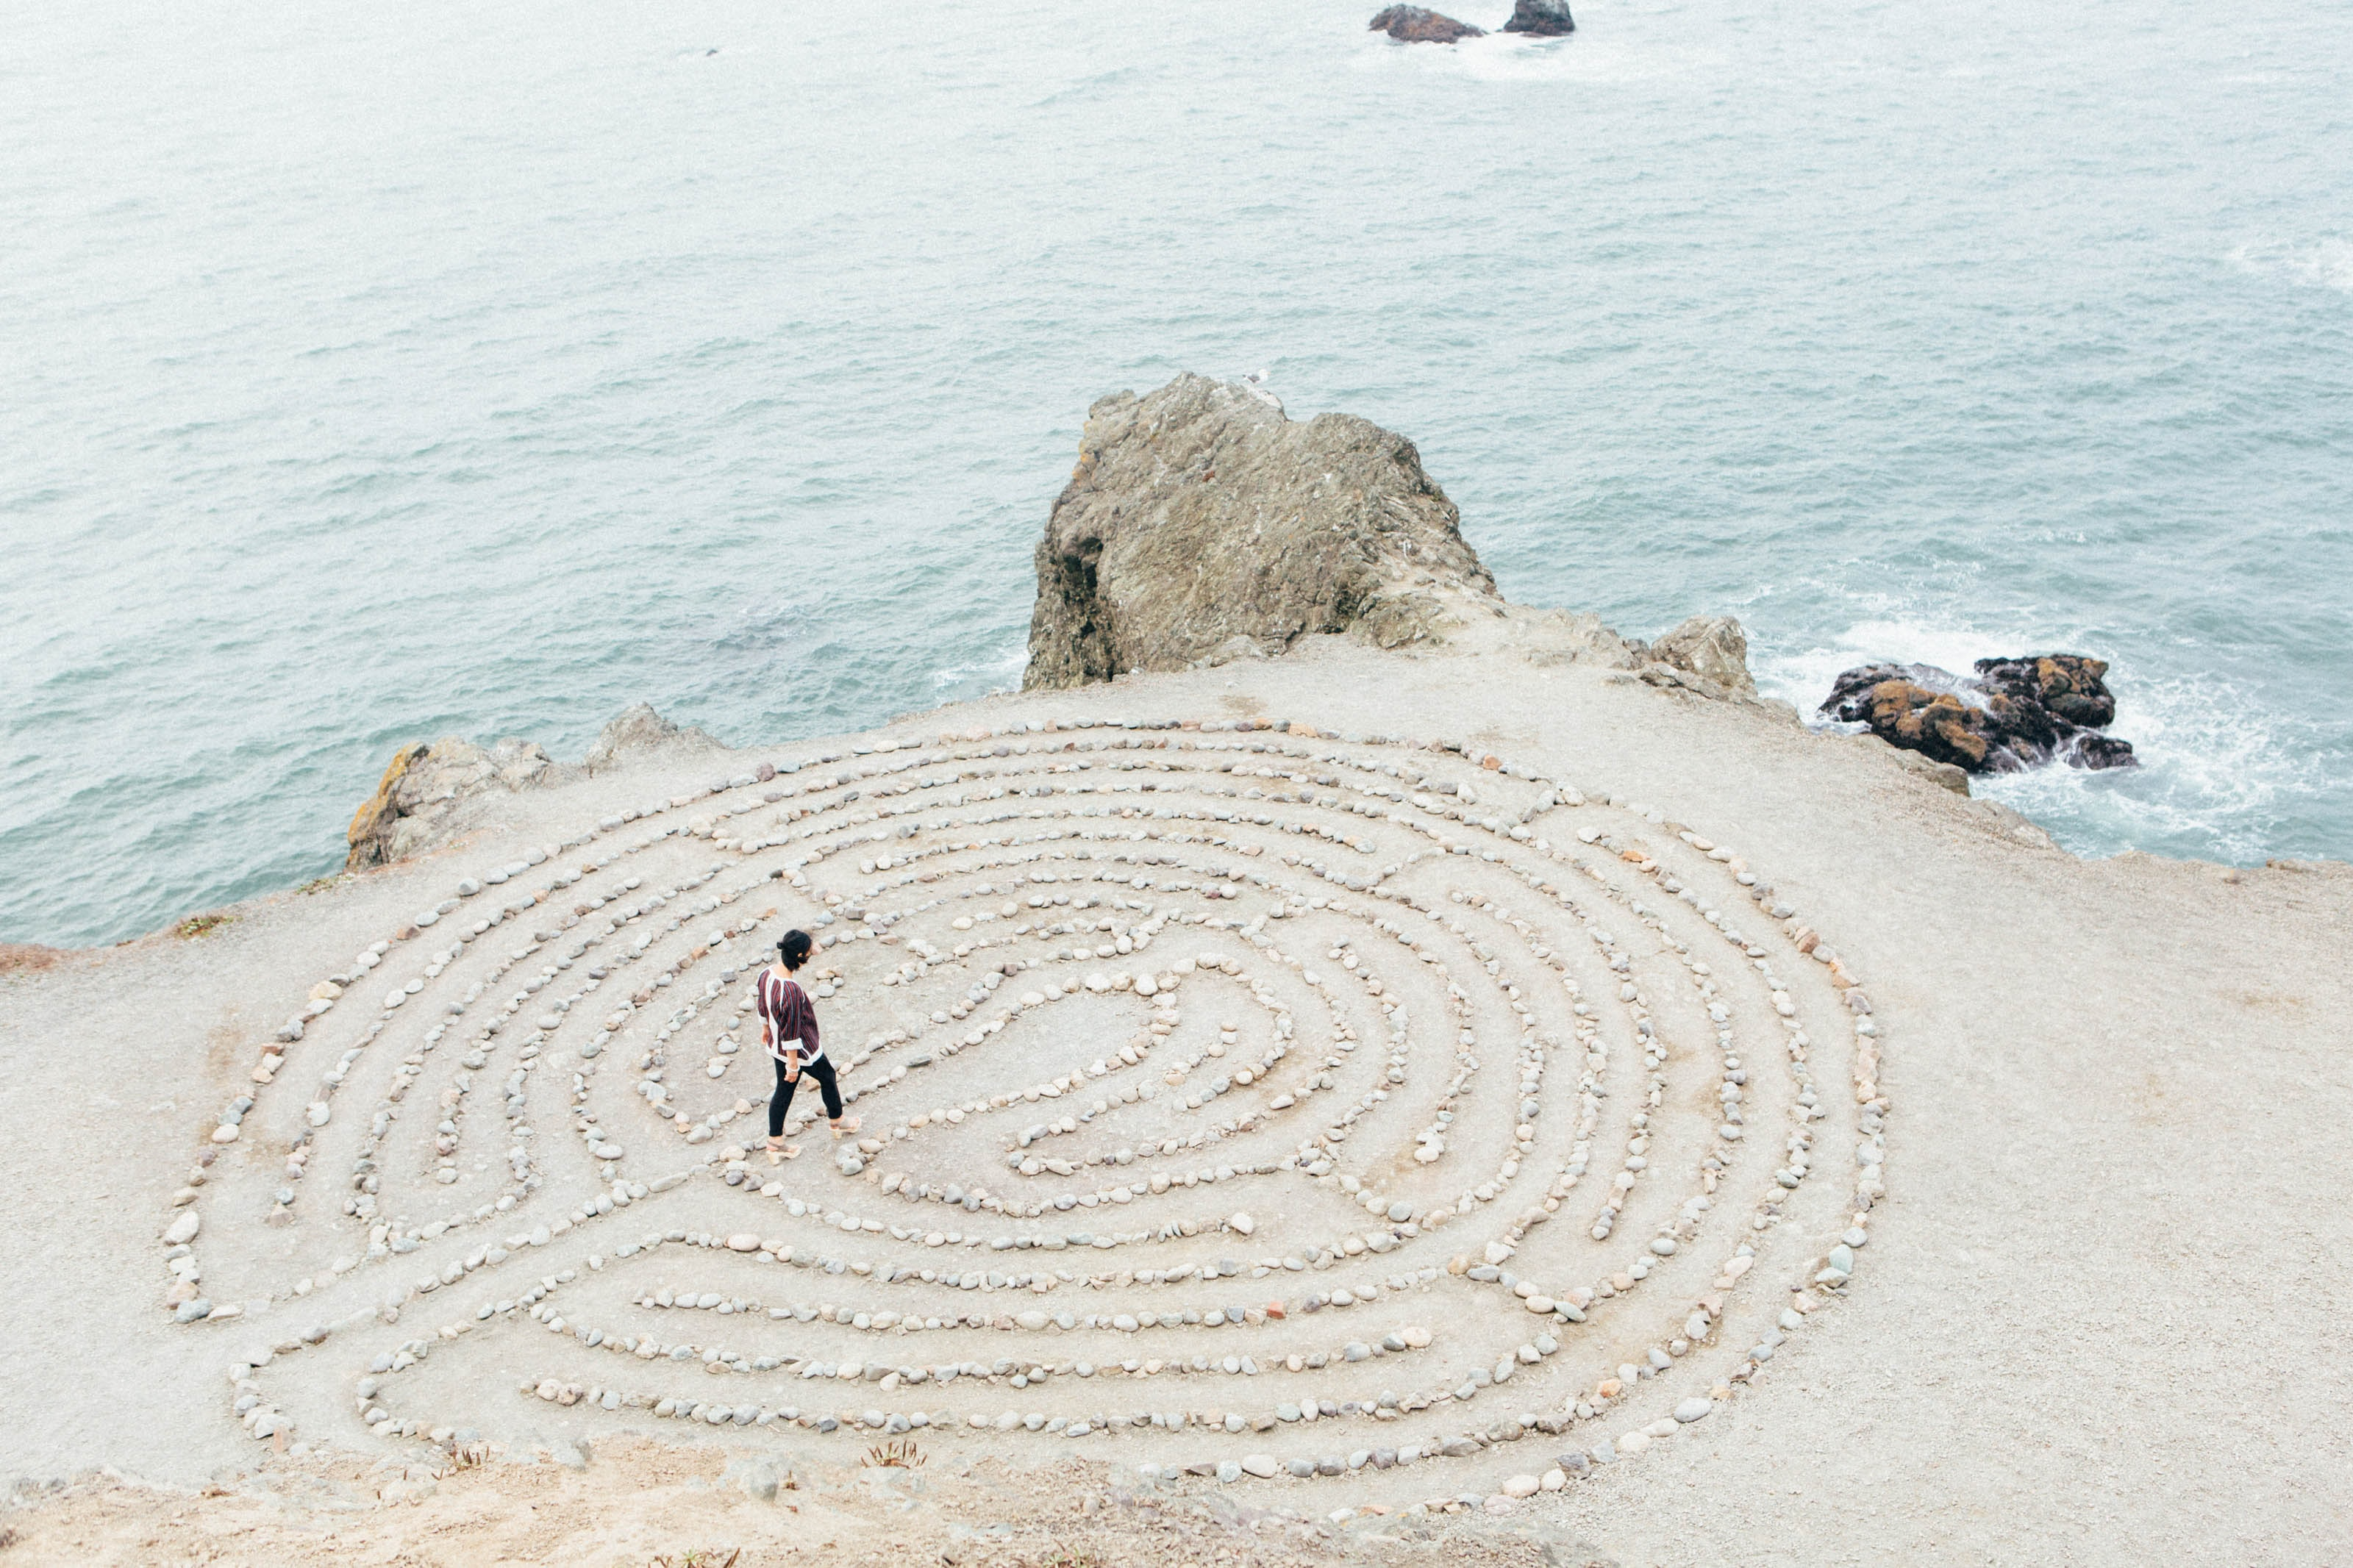 A person walking through a maze made out of rocks by the side of the beach